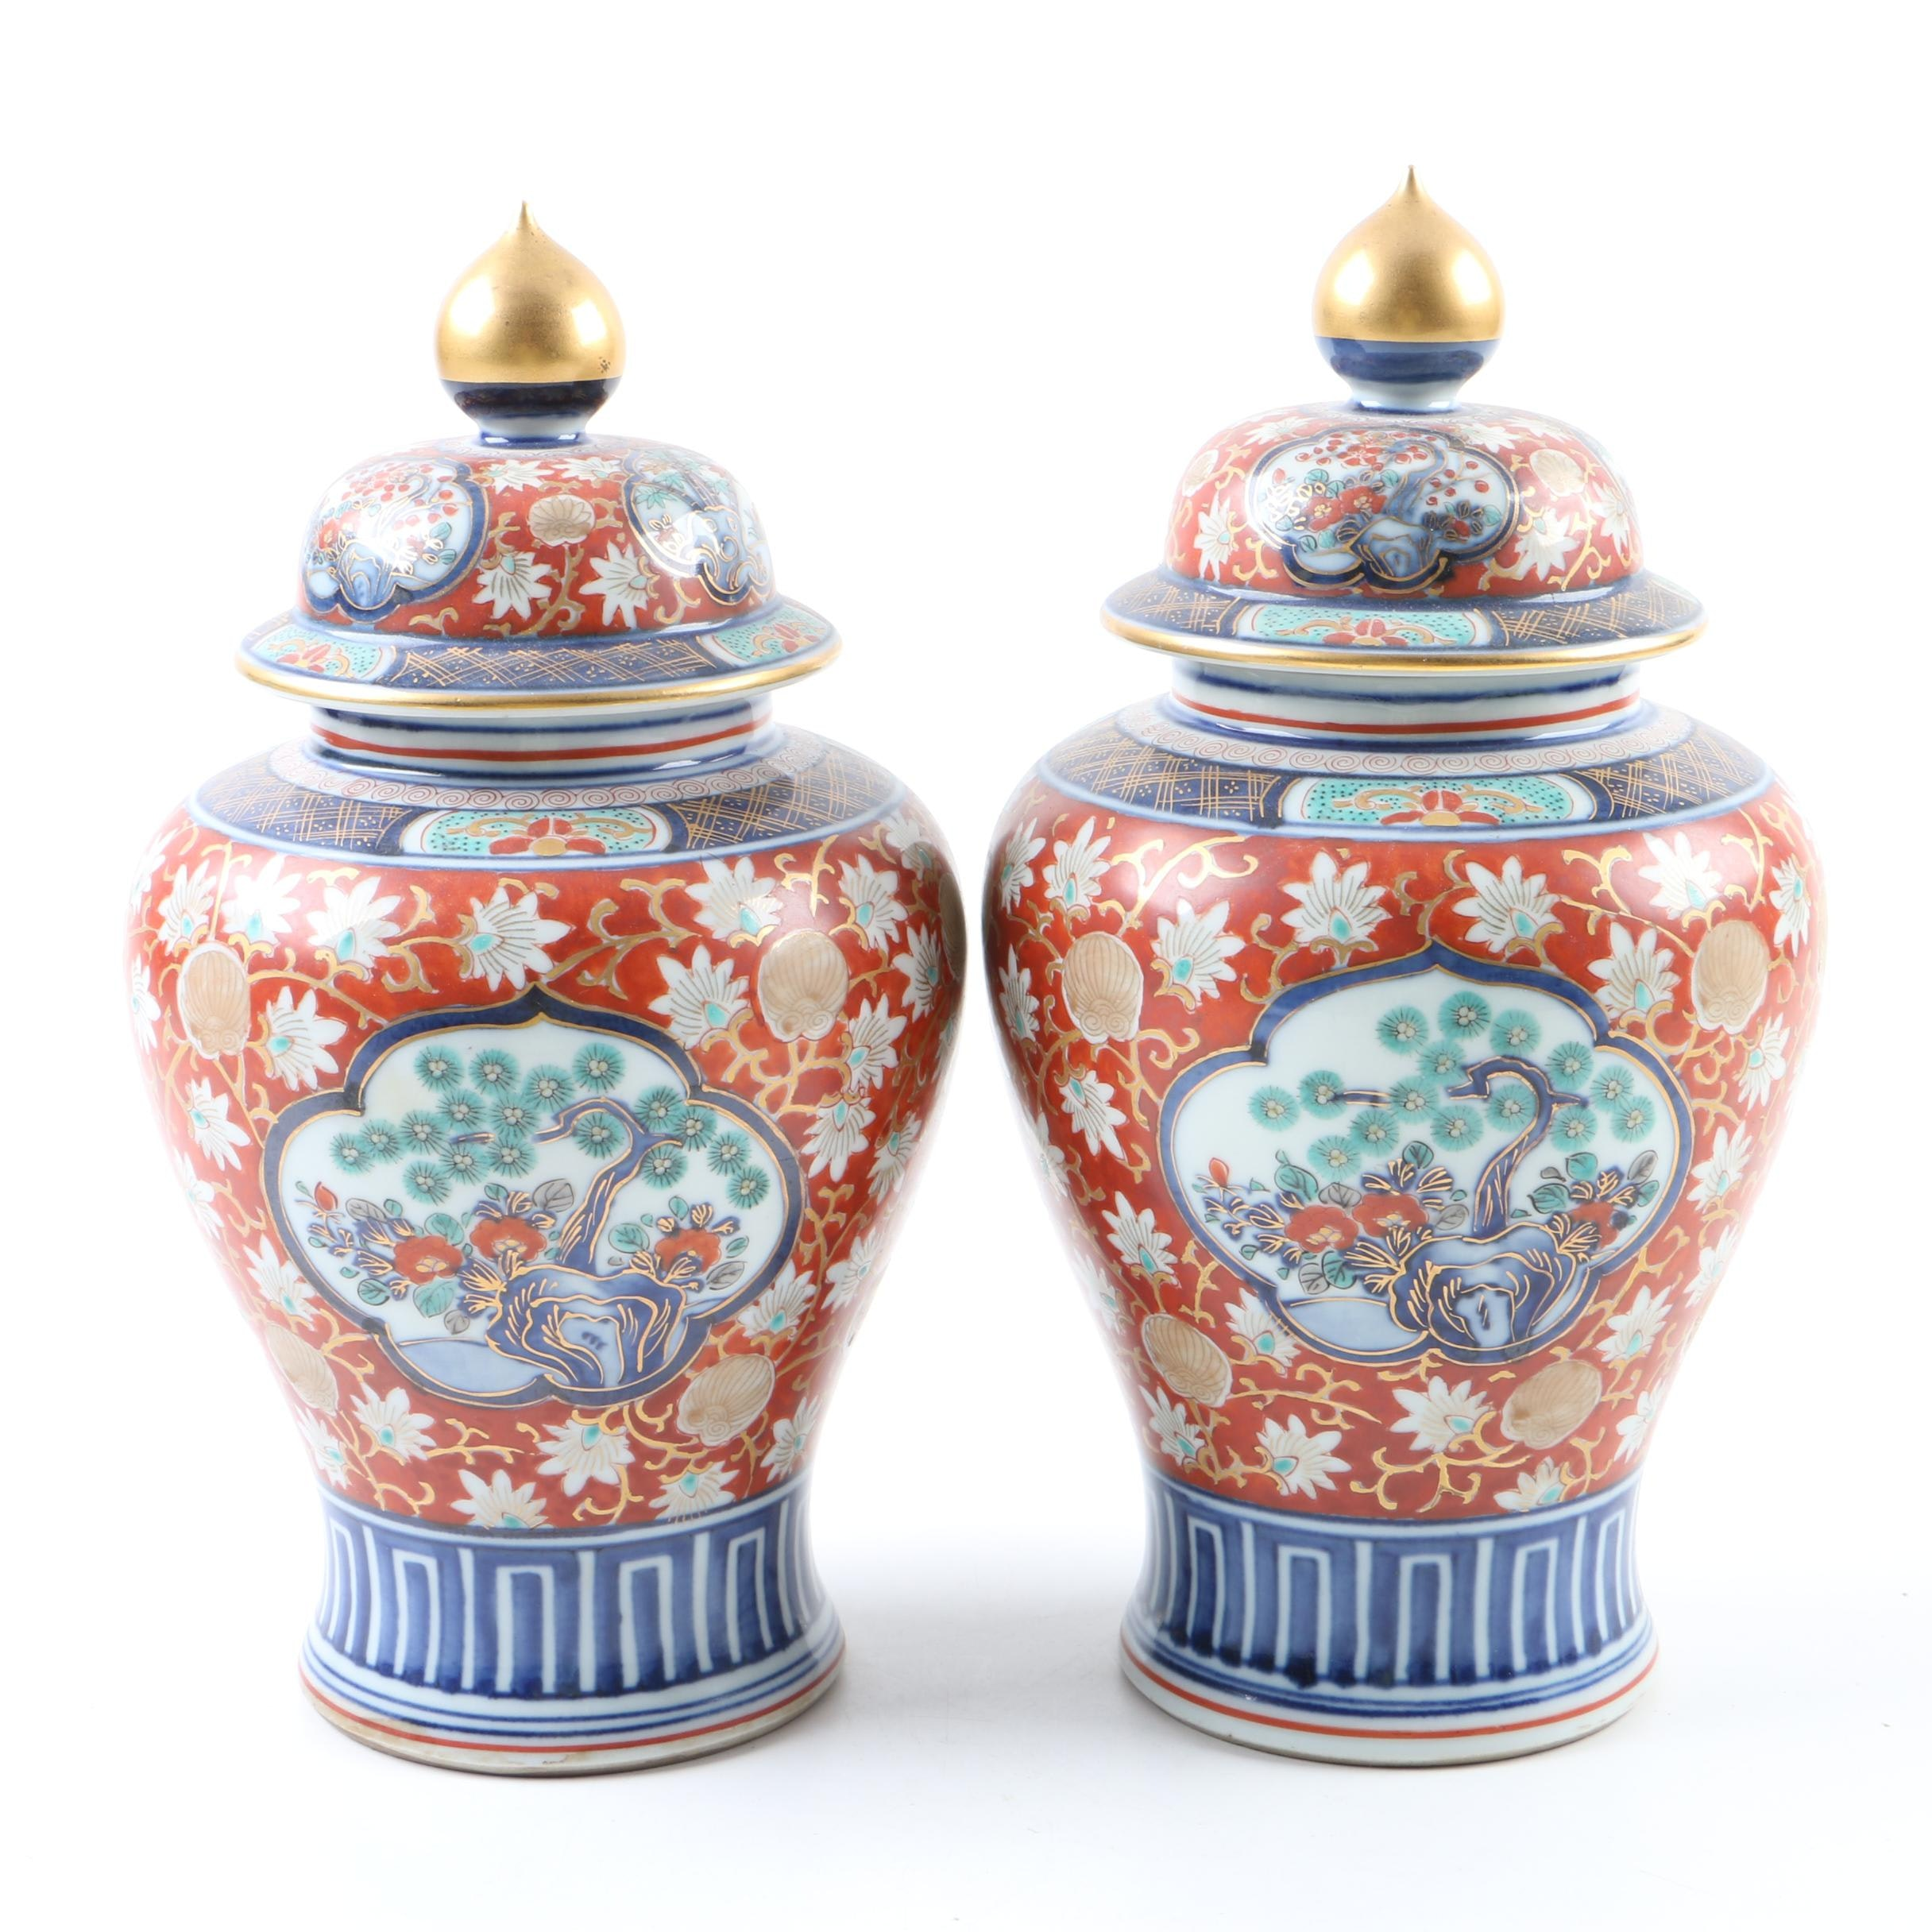 Pair of Chinese Ceramic Urns